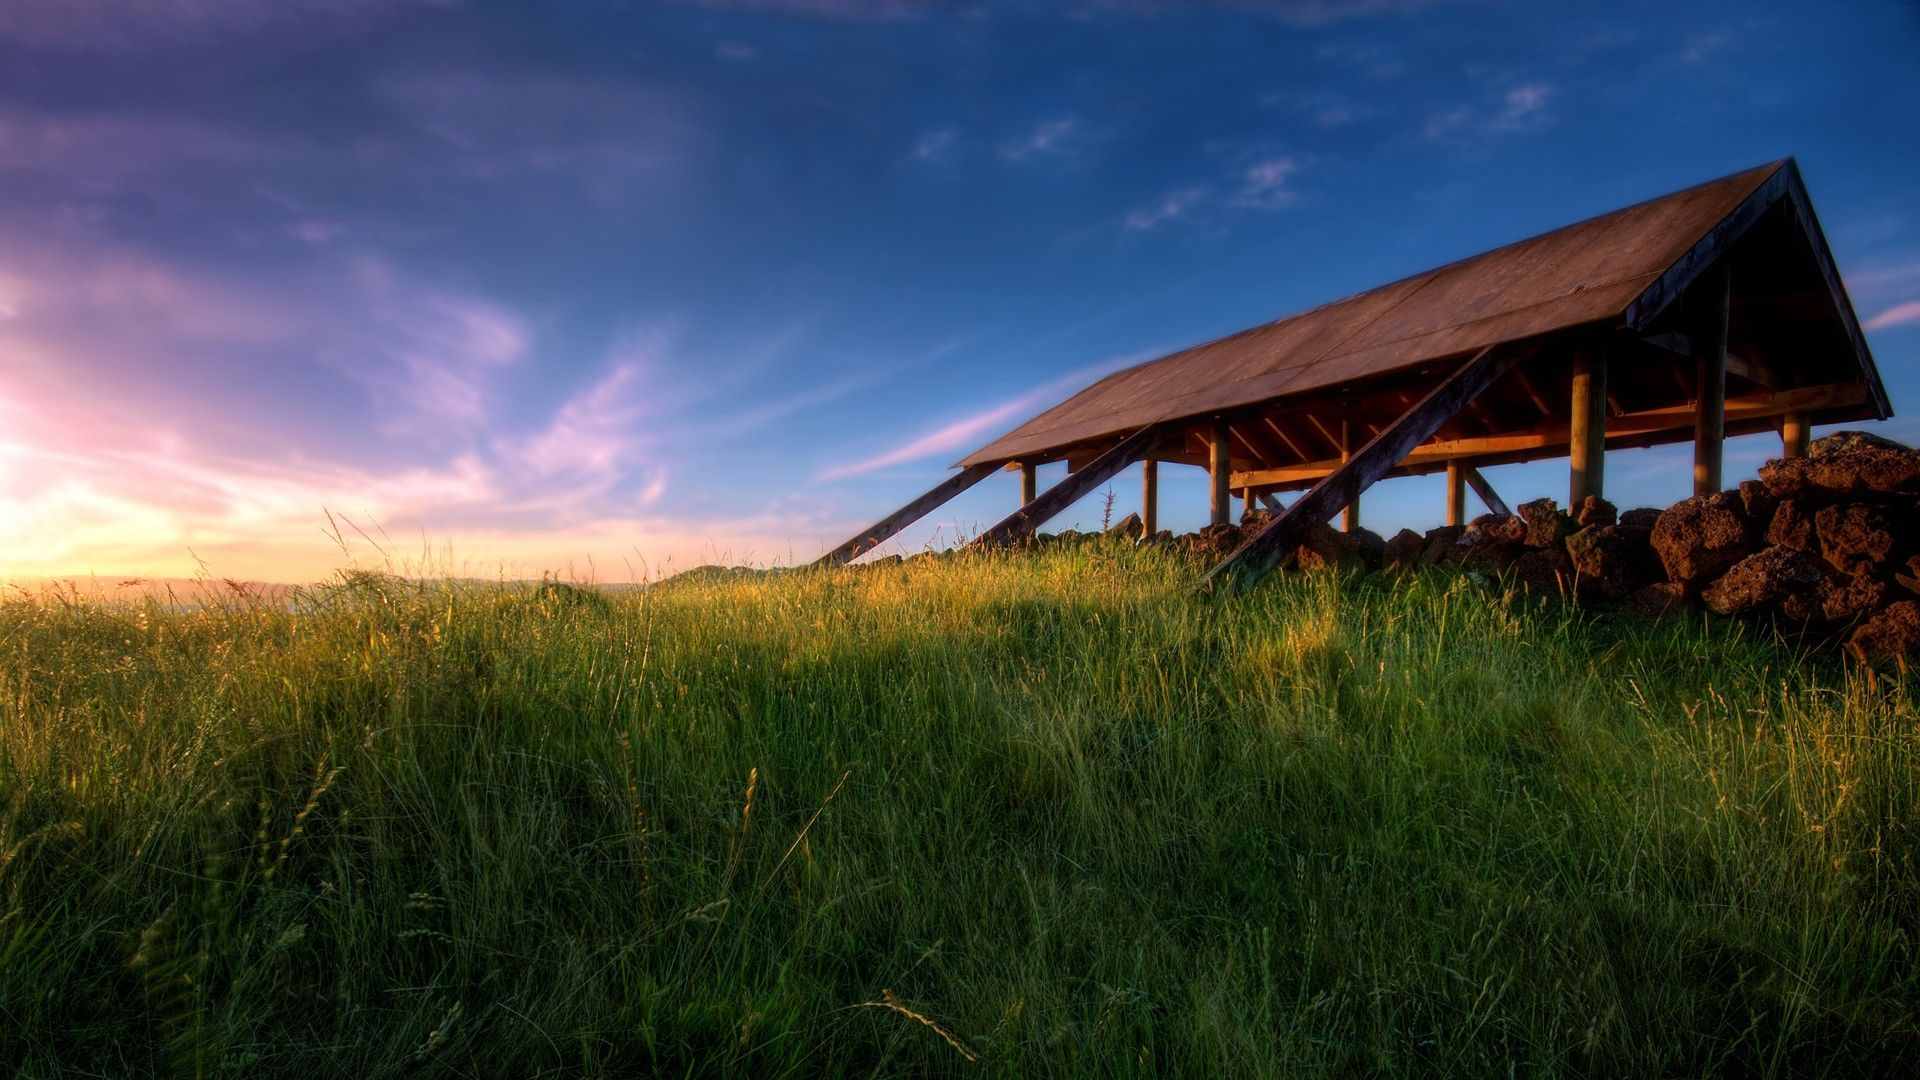 Download Nature Background Images Hd Nature Wallpapers Scenery Wallpaper Scenery